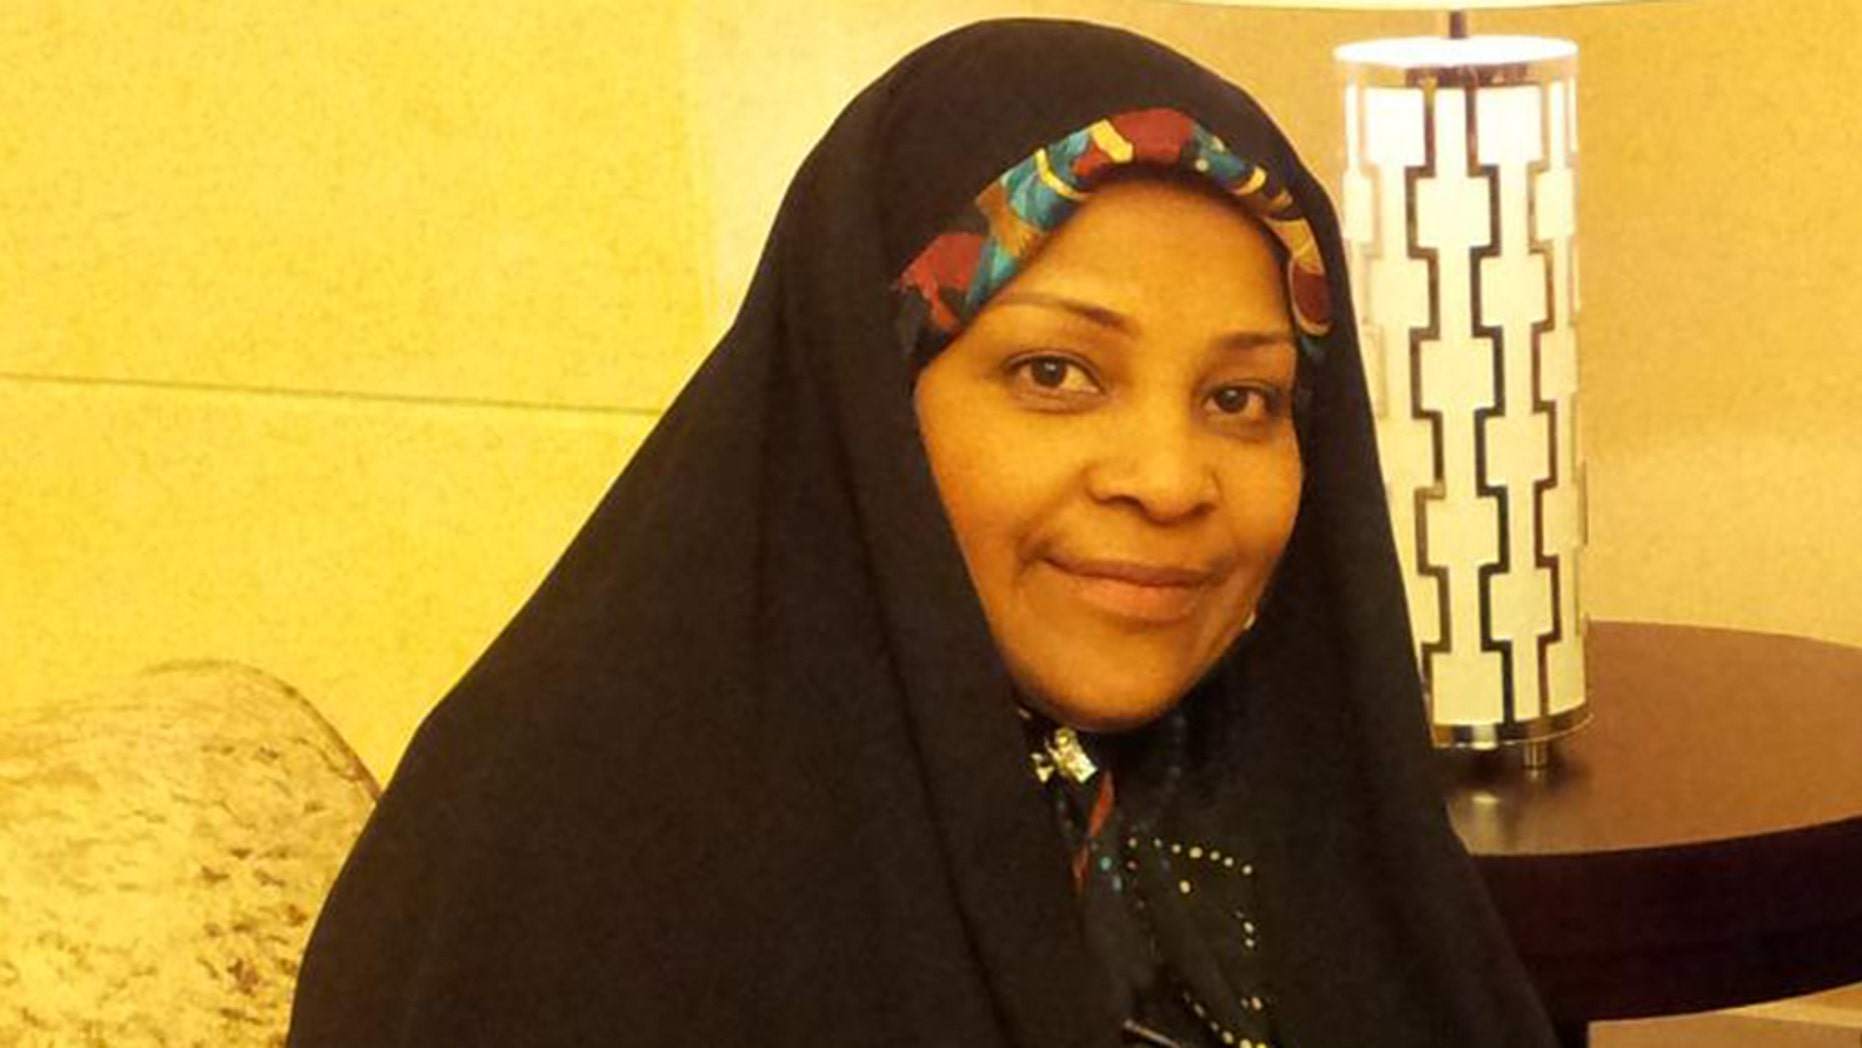 Iranian TV anchor Marzieh Hashemi, originally born in the U.S. was arrested after arriving in St. Louis on Sunday, the state broadcaster reported.